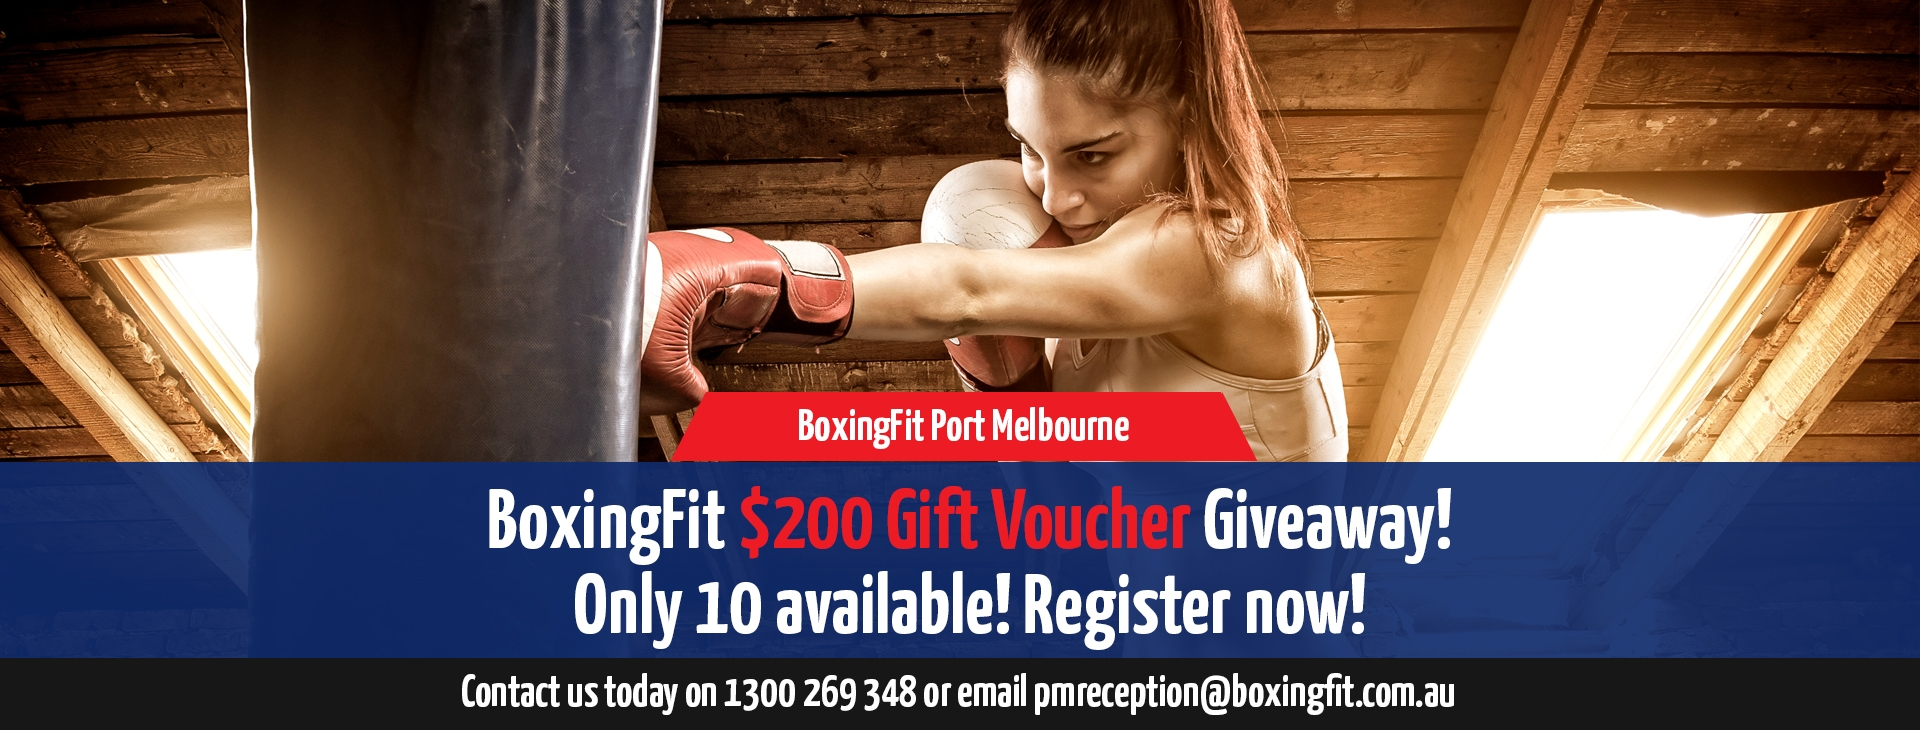 BOXING FIT GIFT VOUCHER OFFER